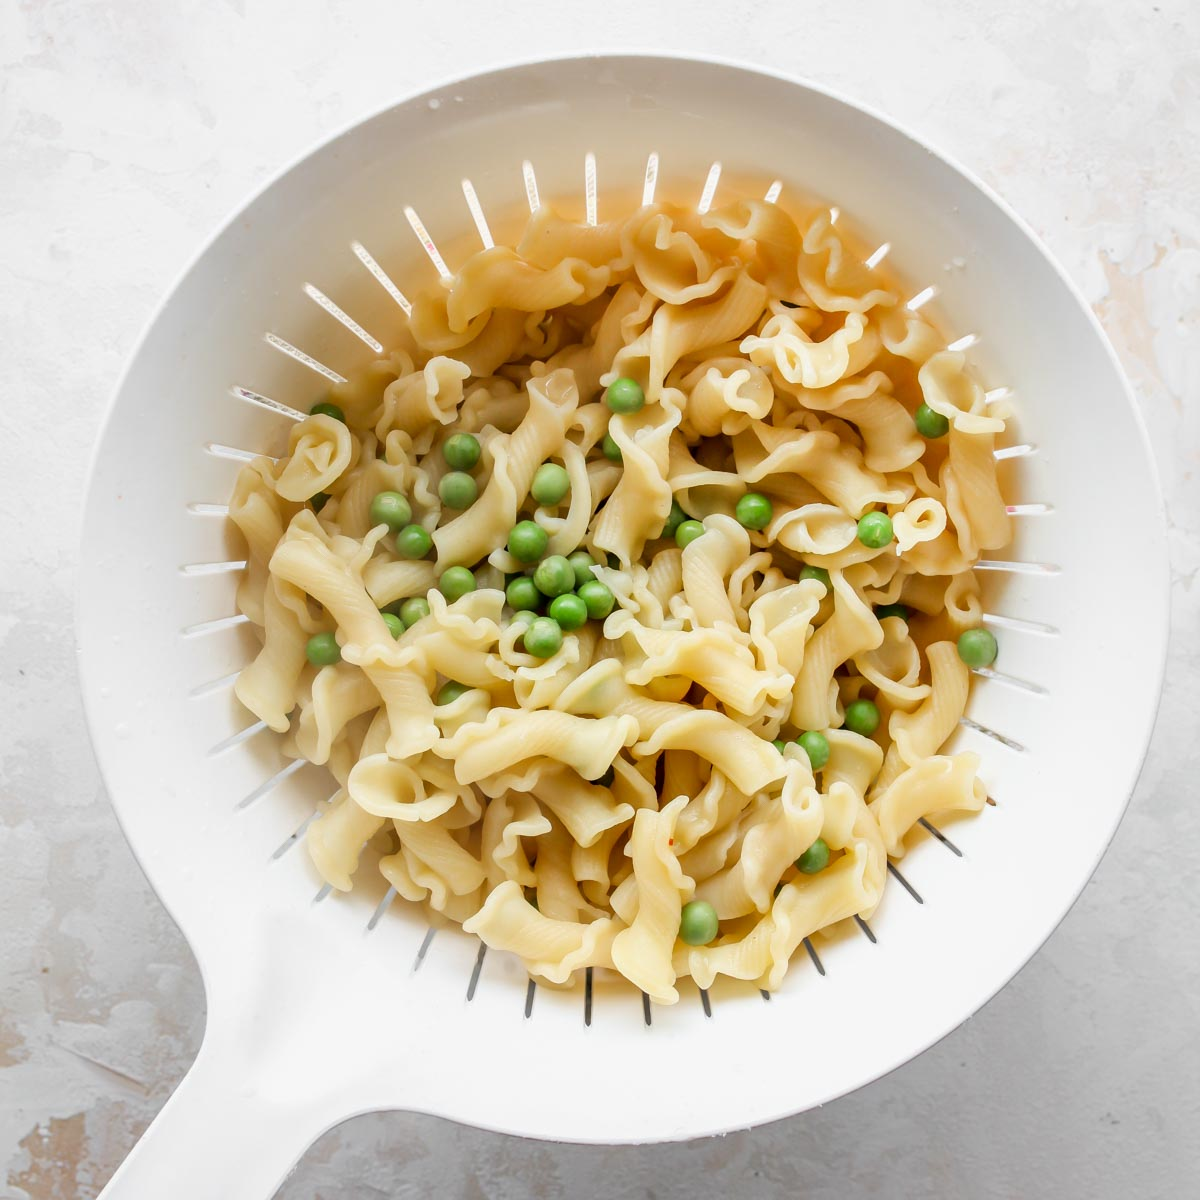 Cooked pasta noodles and green peas in a strainer